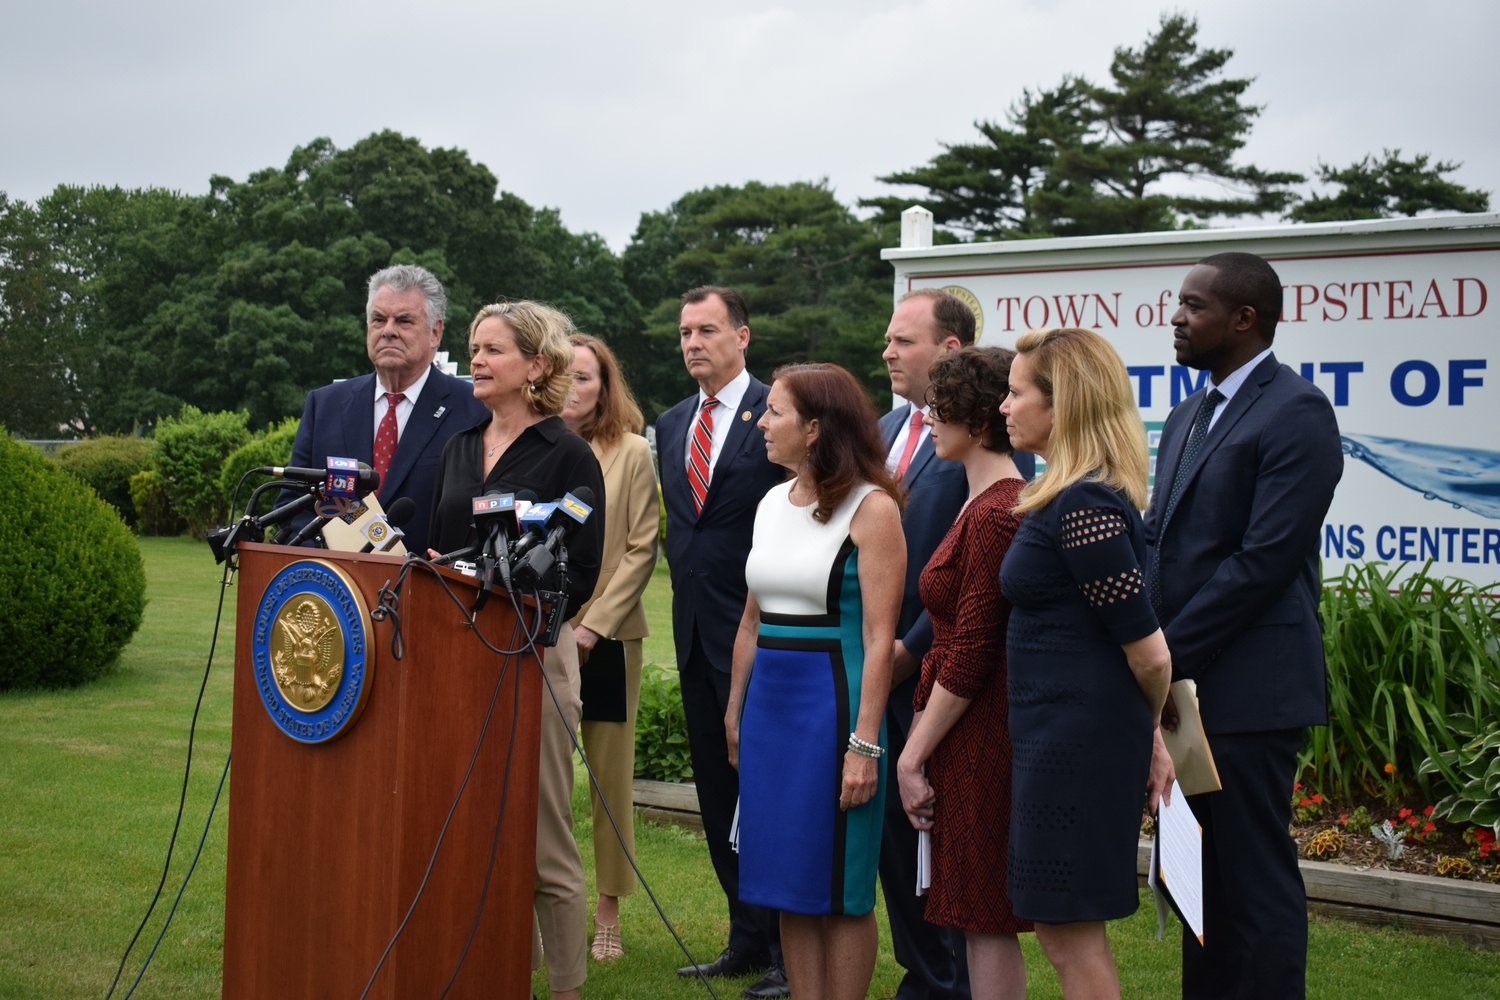 Local and federal elected officials and environmental advocates urged the Environmental Protection Agency to set standards for emerging contaminants in Long Islands water supply. At the lectern was Nassau County Executive Laura Curran.